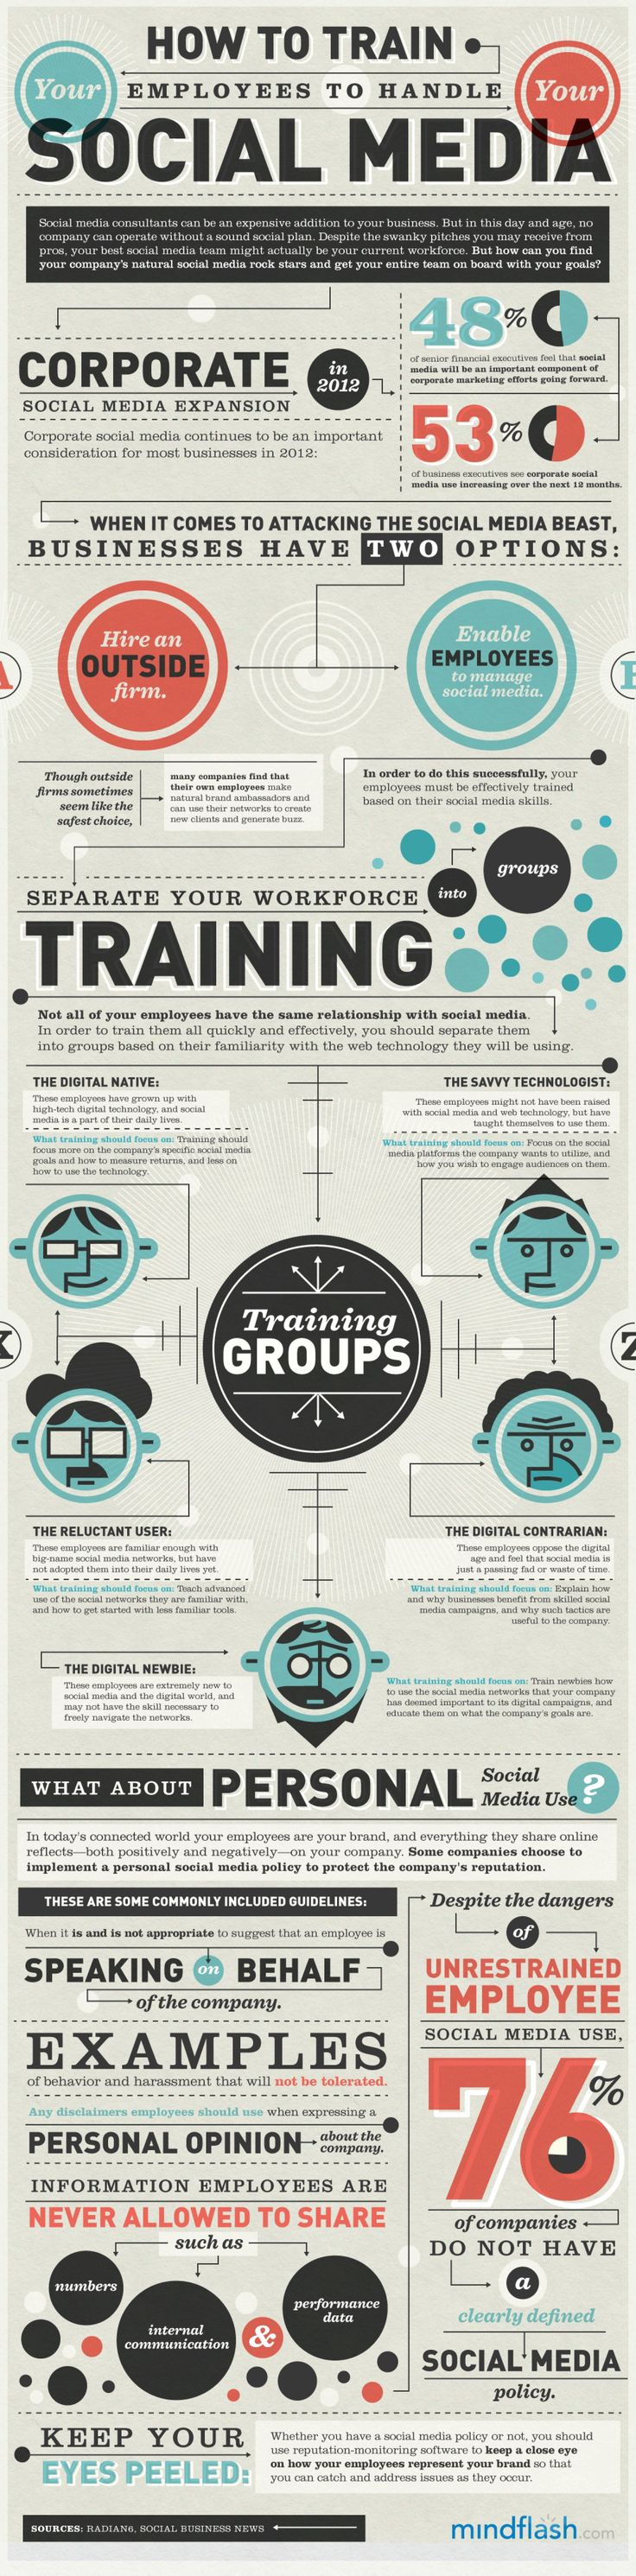 How to Train Your Employees to Handle Social Media  Infographic | Propel Marketing